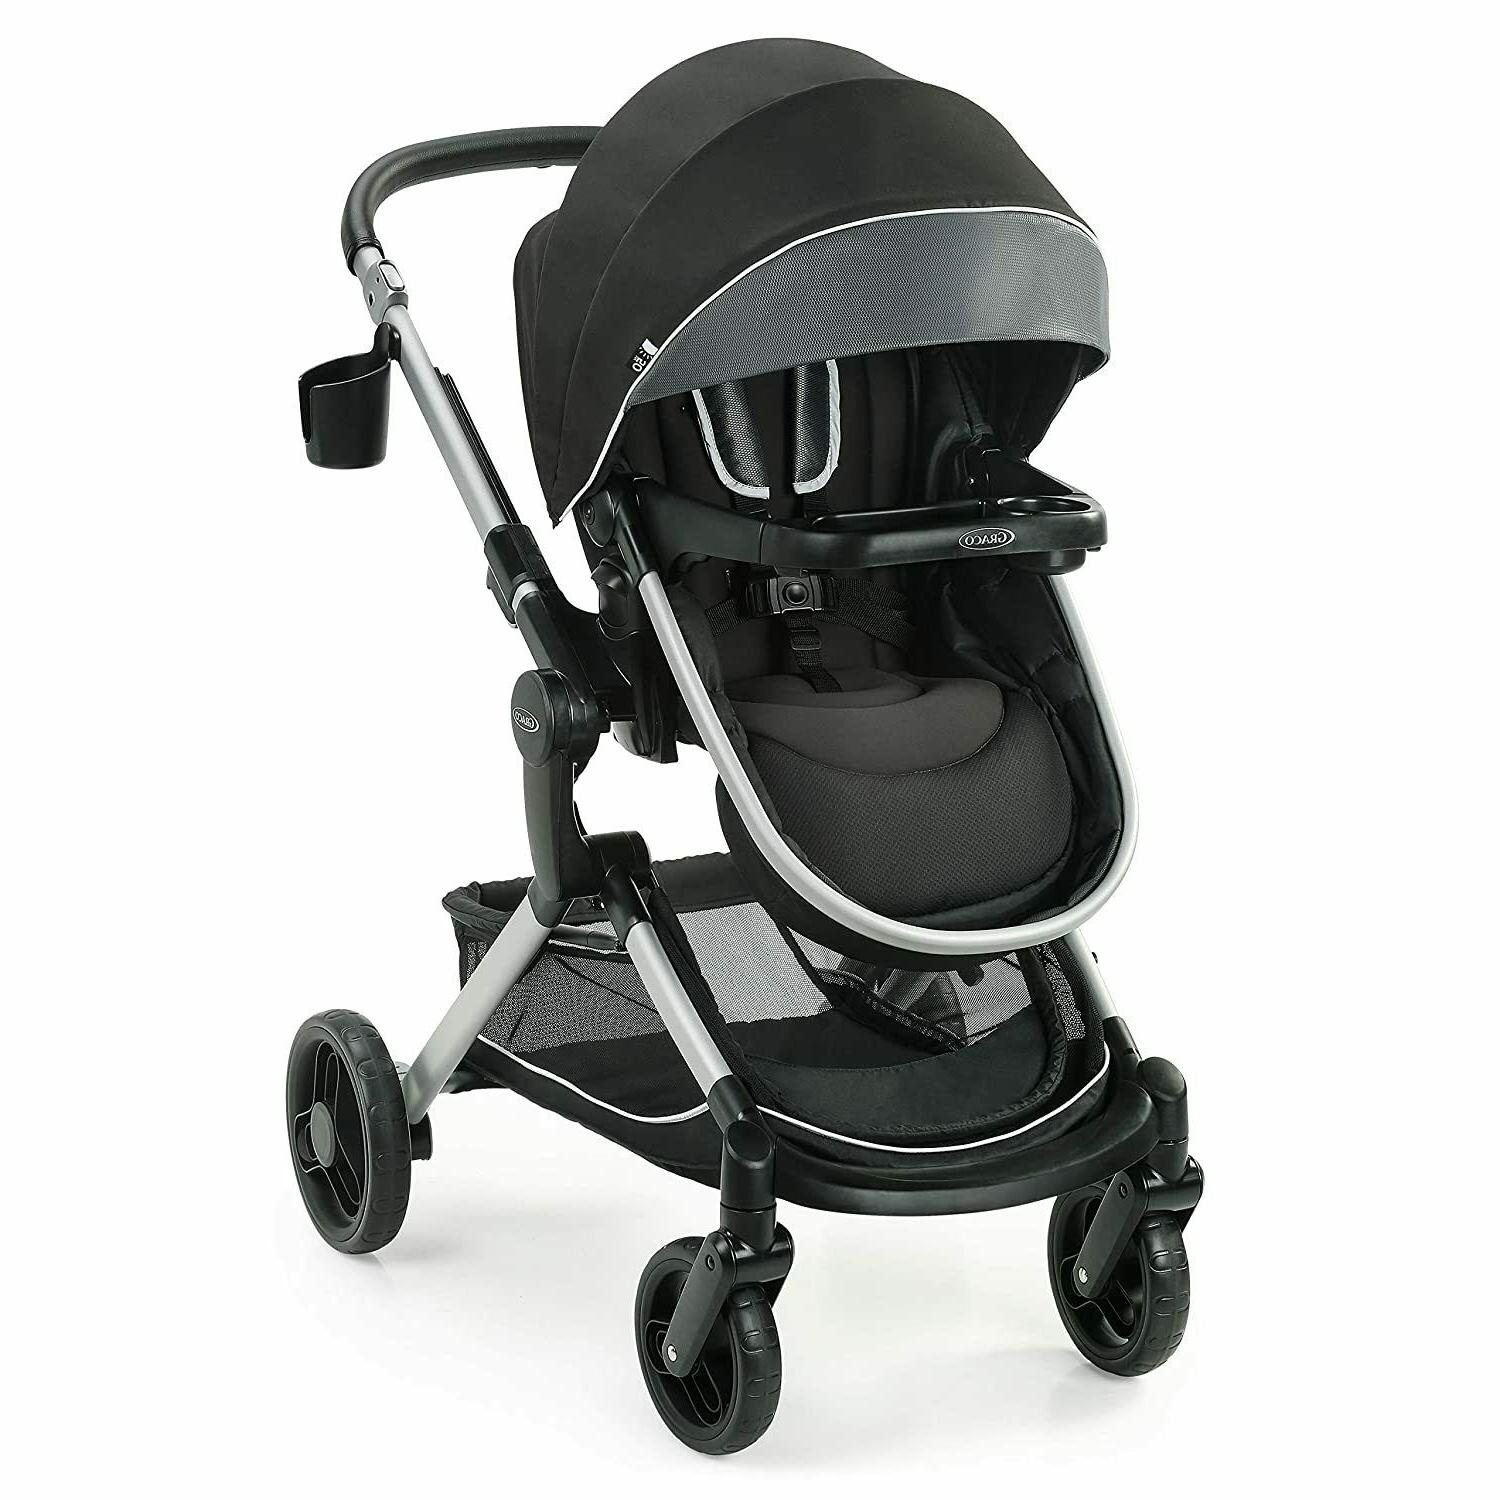 modes nest baby stroller height adjustable reversible